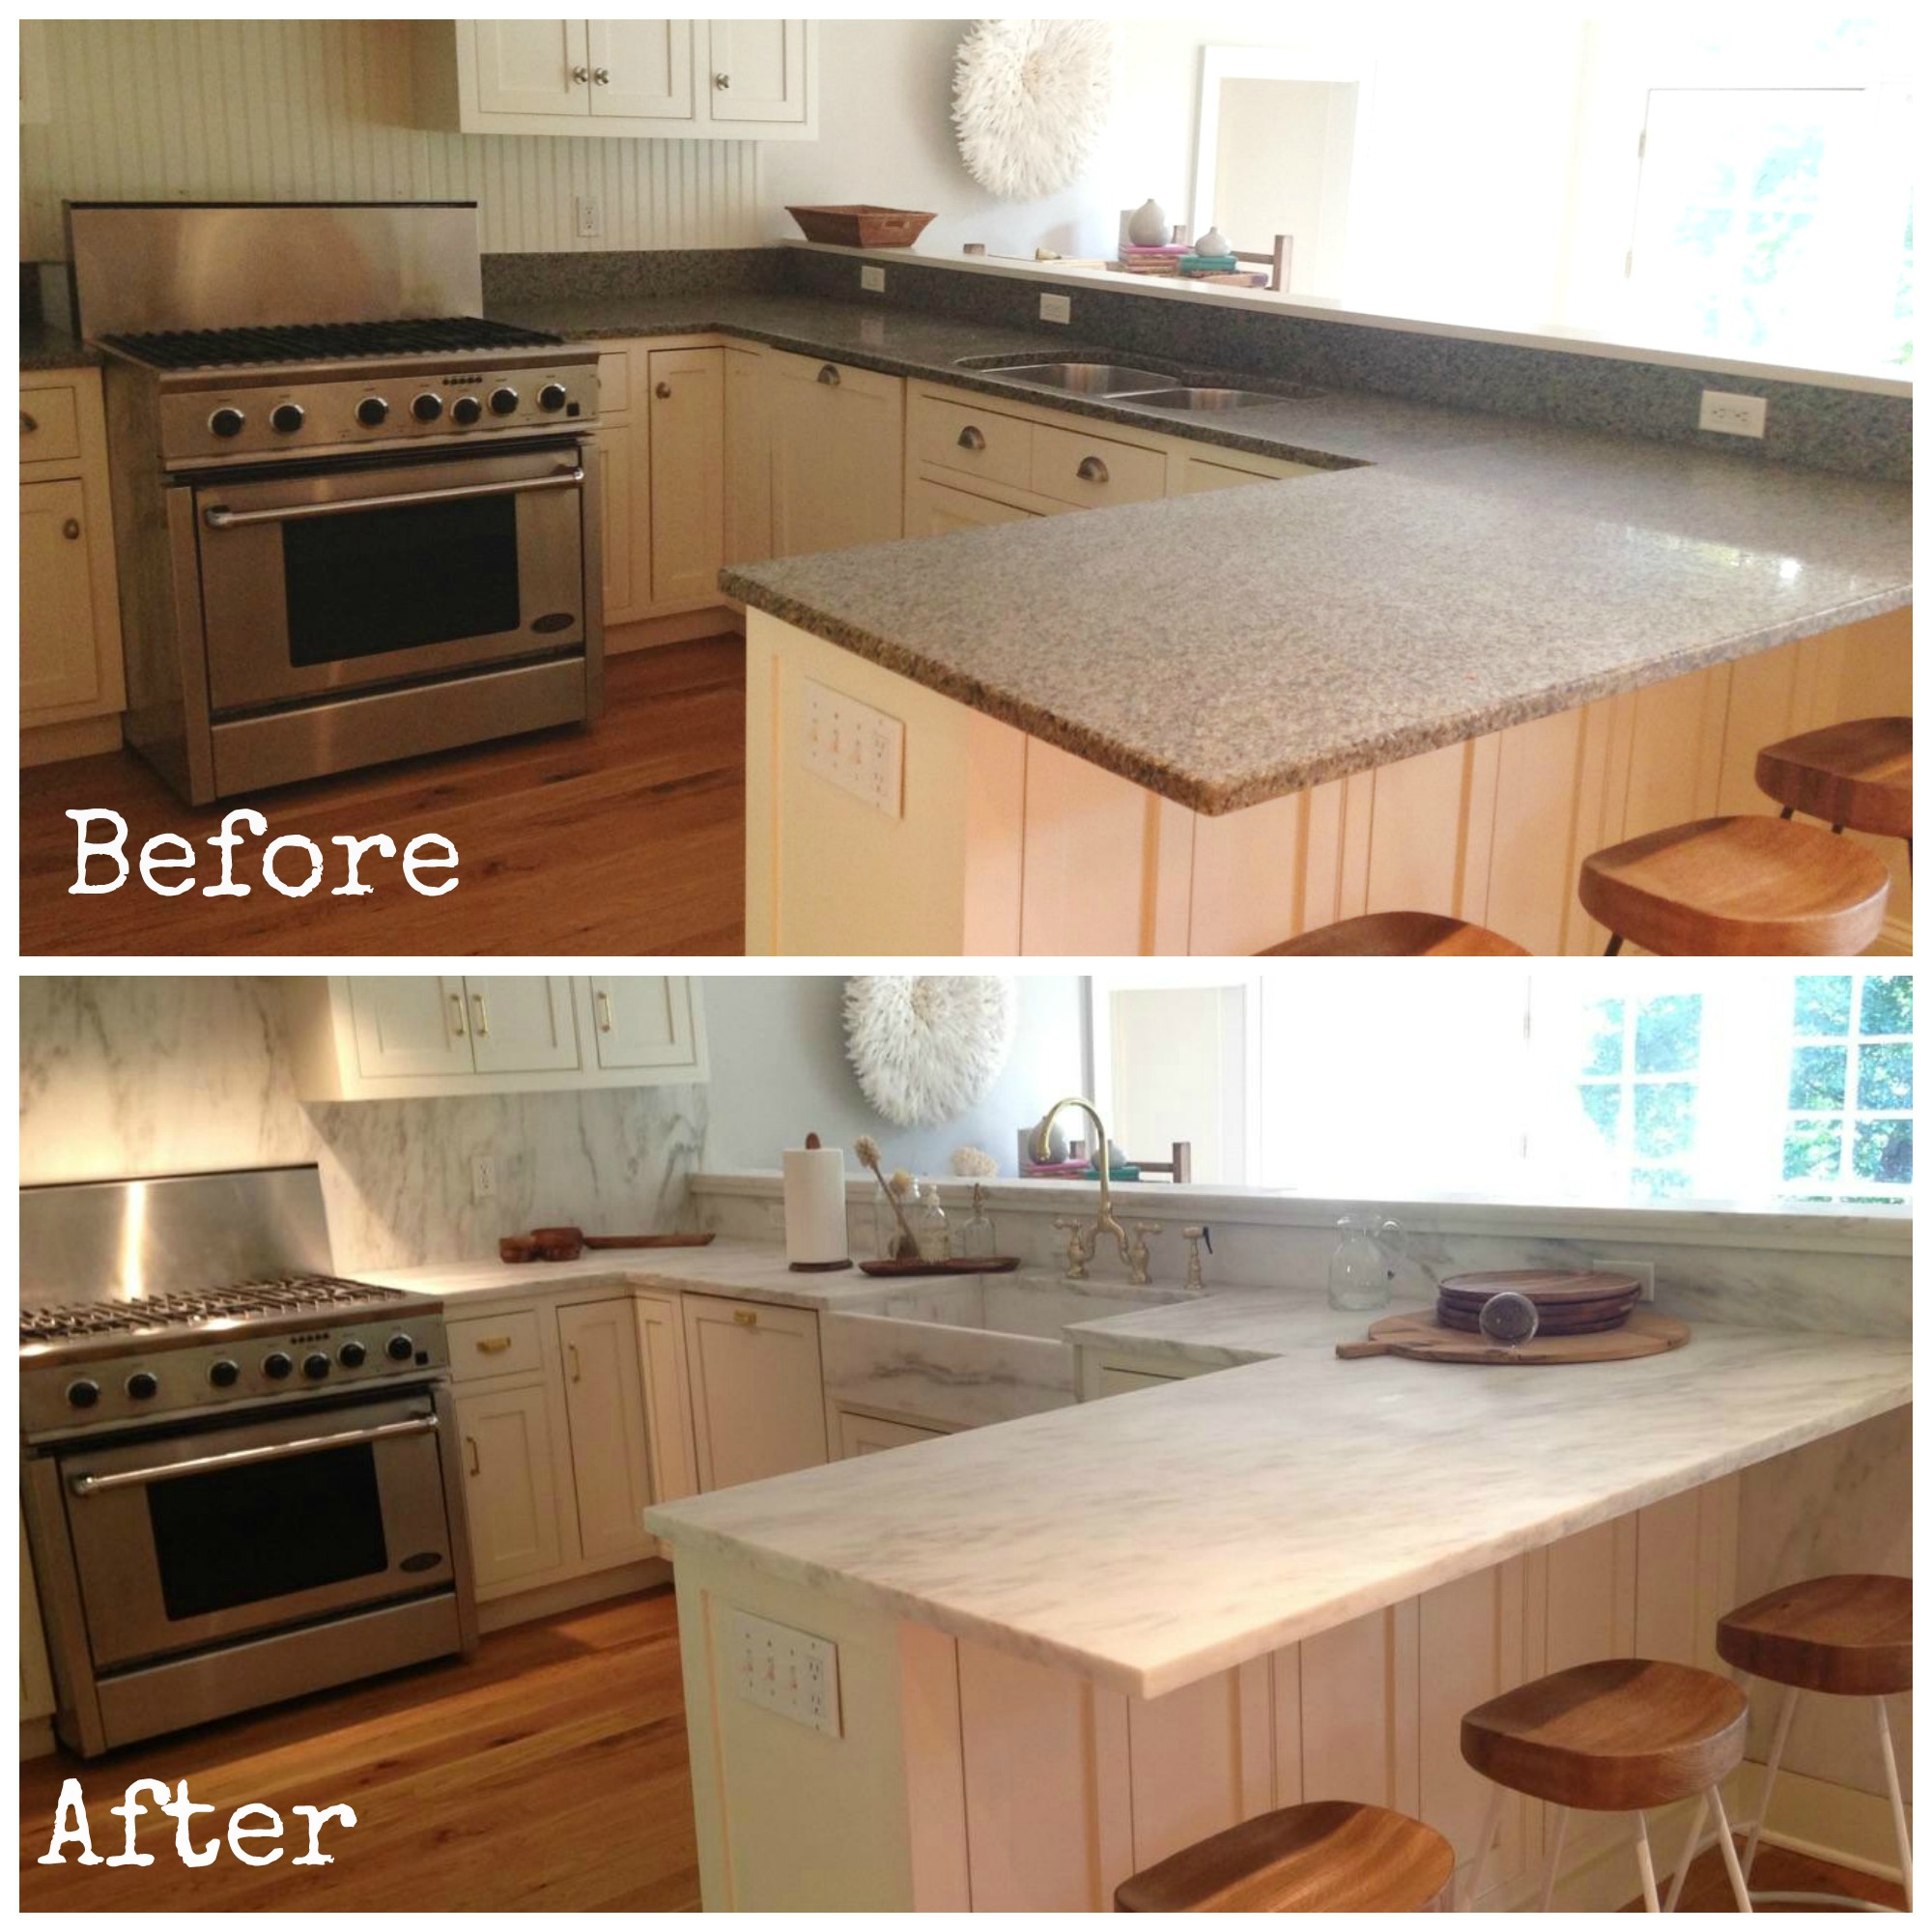 Kitchen Countertops in Darien, CT